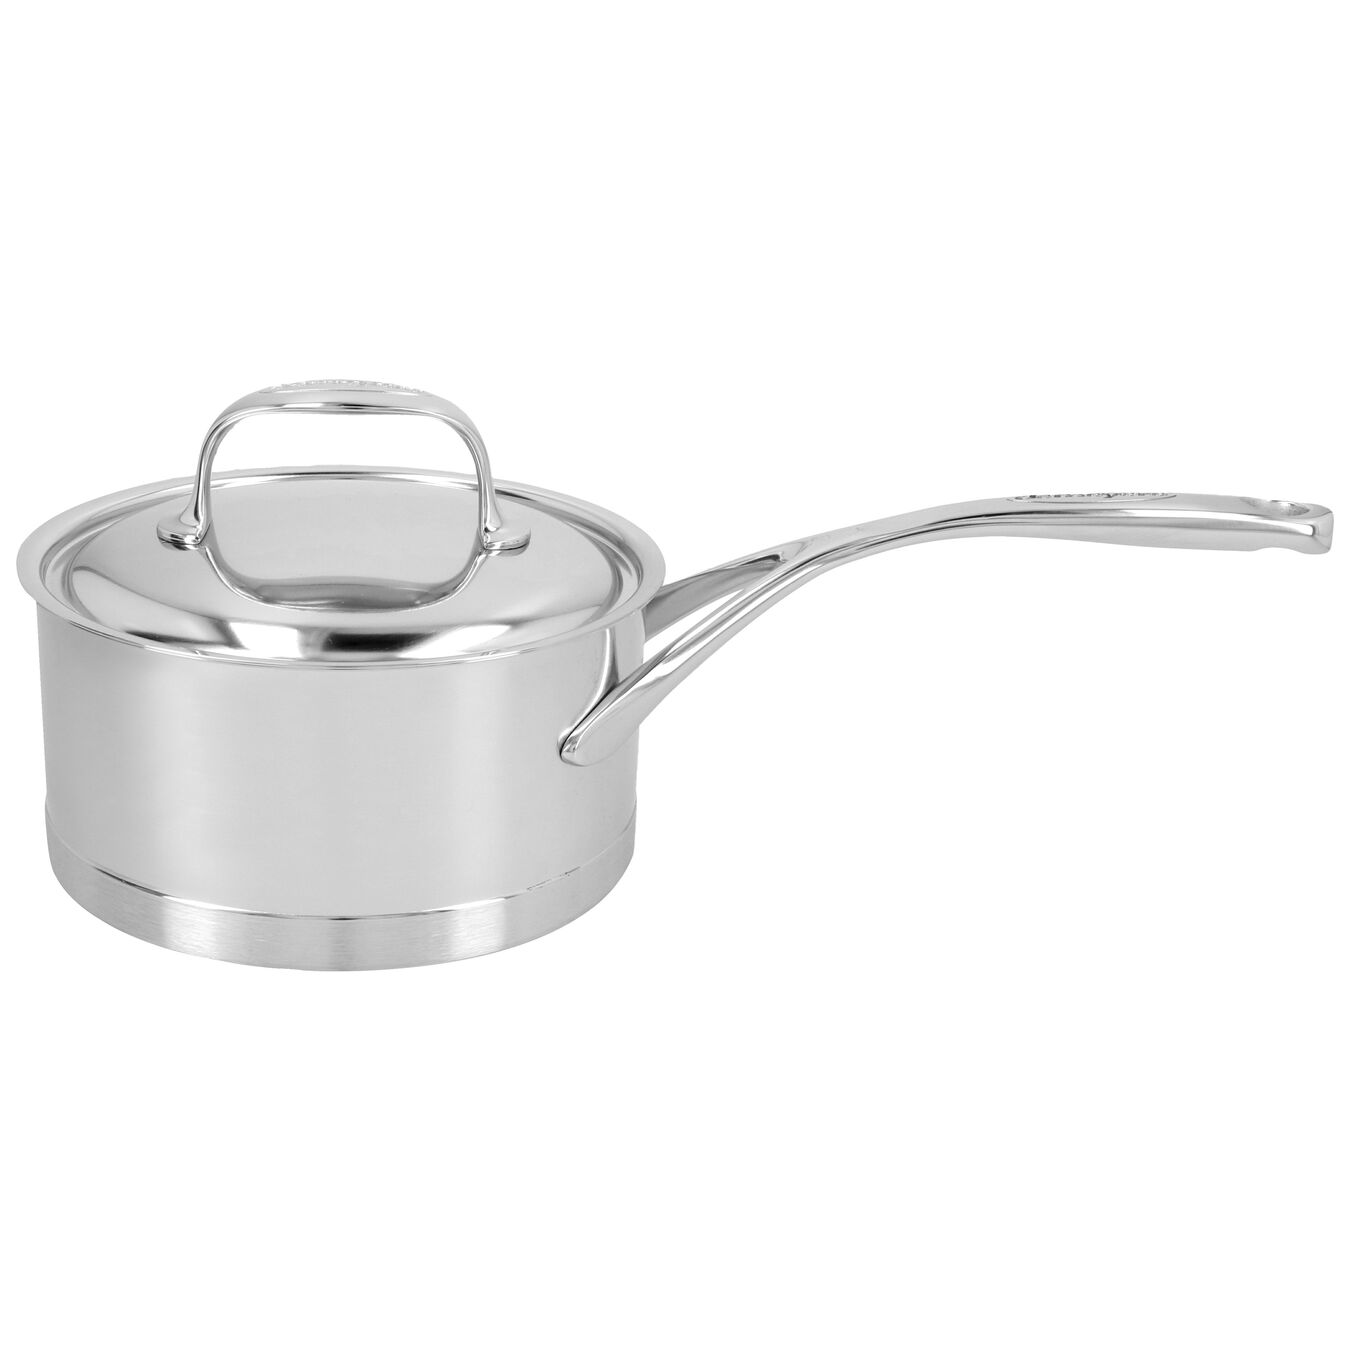 1.5 l round Sauce pan with lid, silver,,large 1